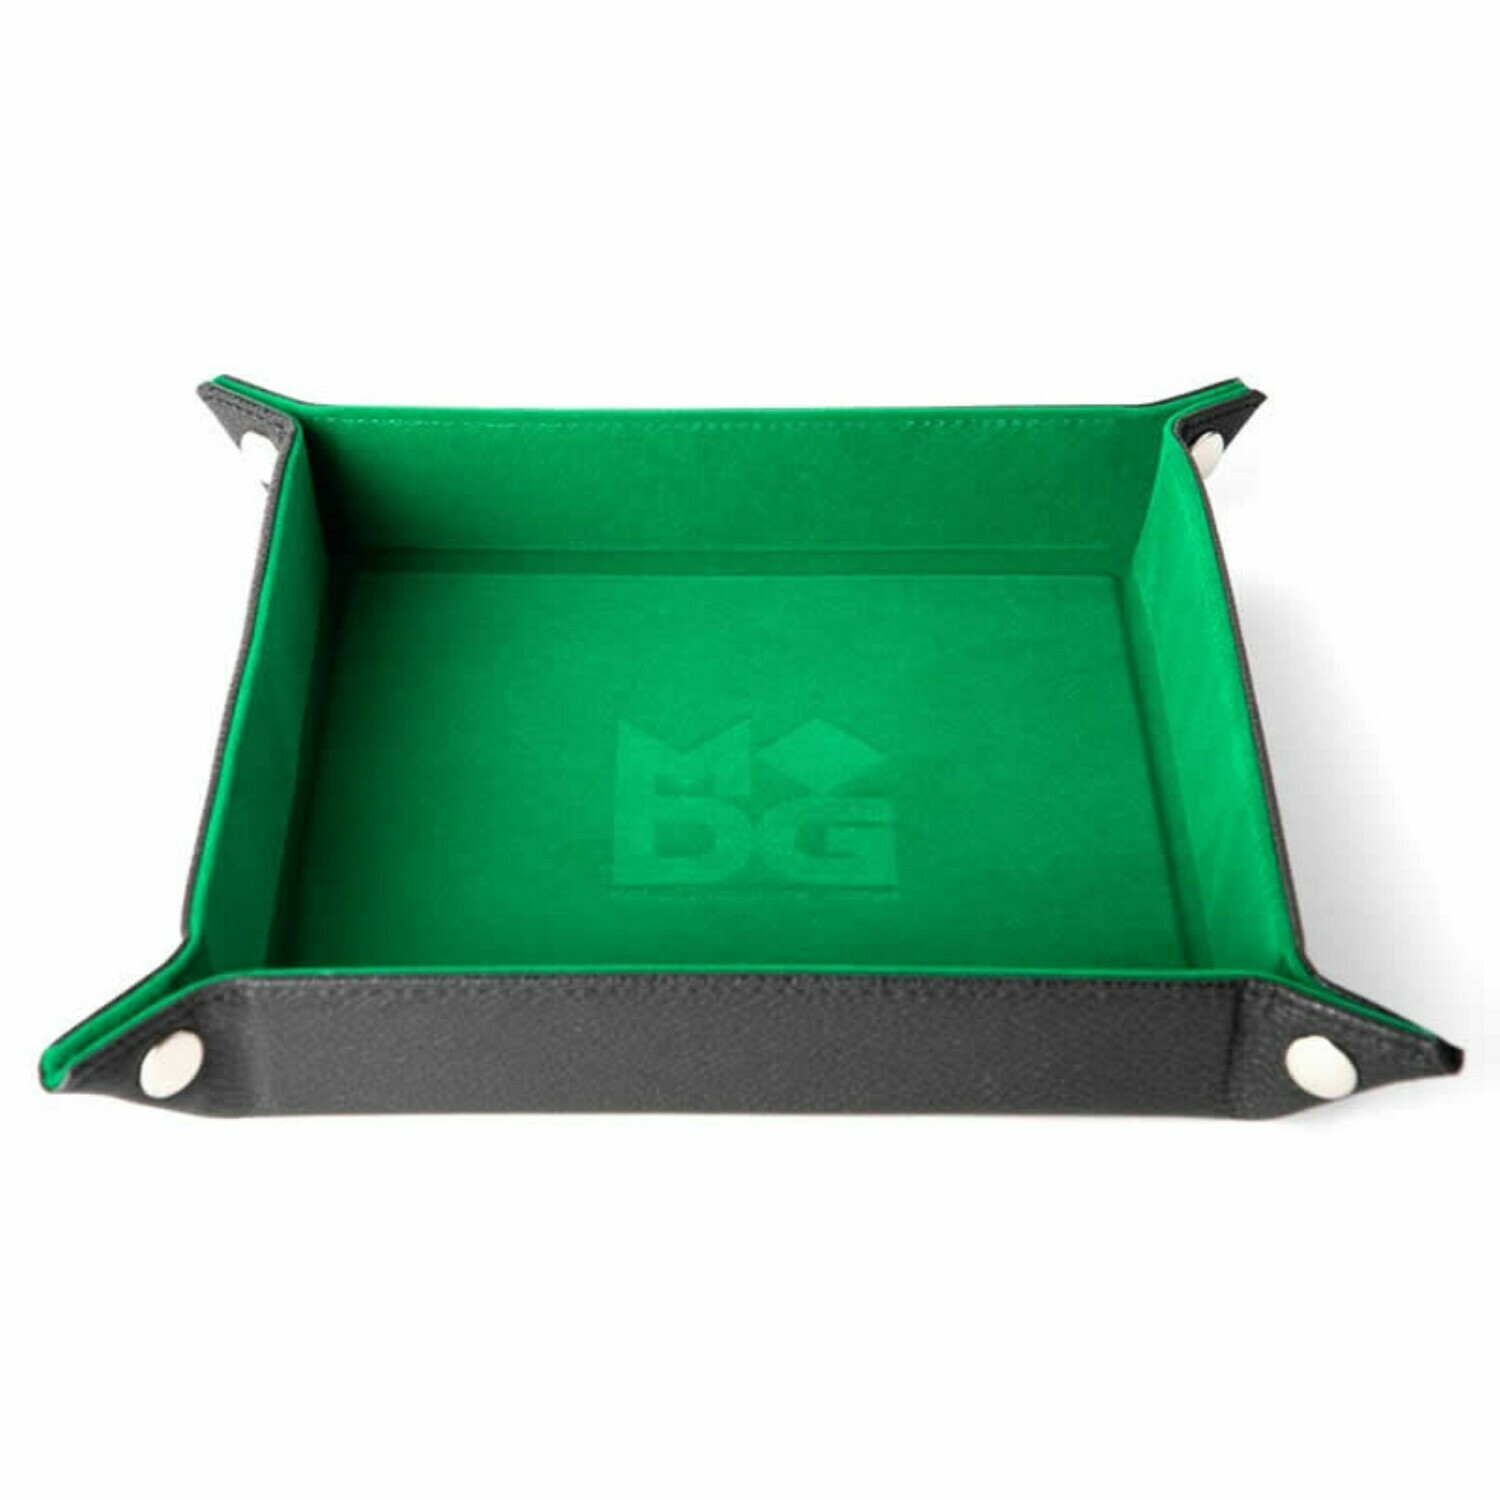 Green Velvet Dice Tray With Leather Backing RPG Tabletop Gaming